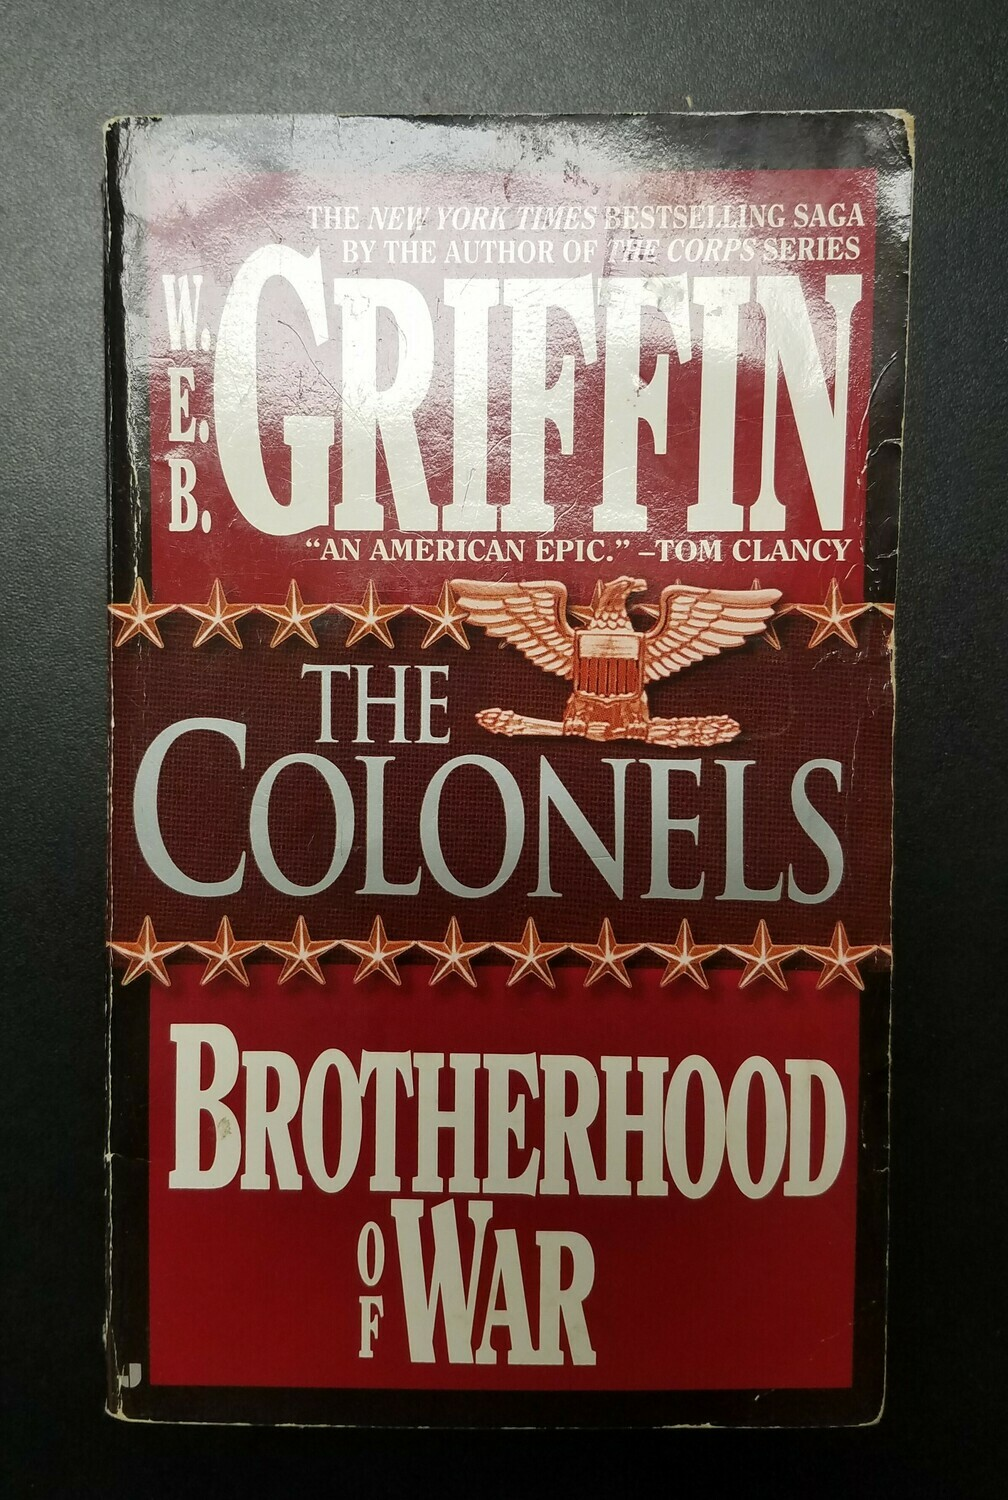 Brotherhood of War: The Colonels by W.E.B. Griffin